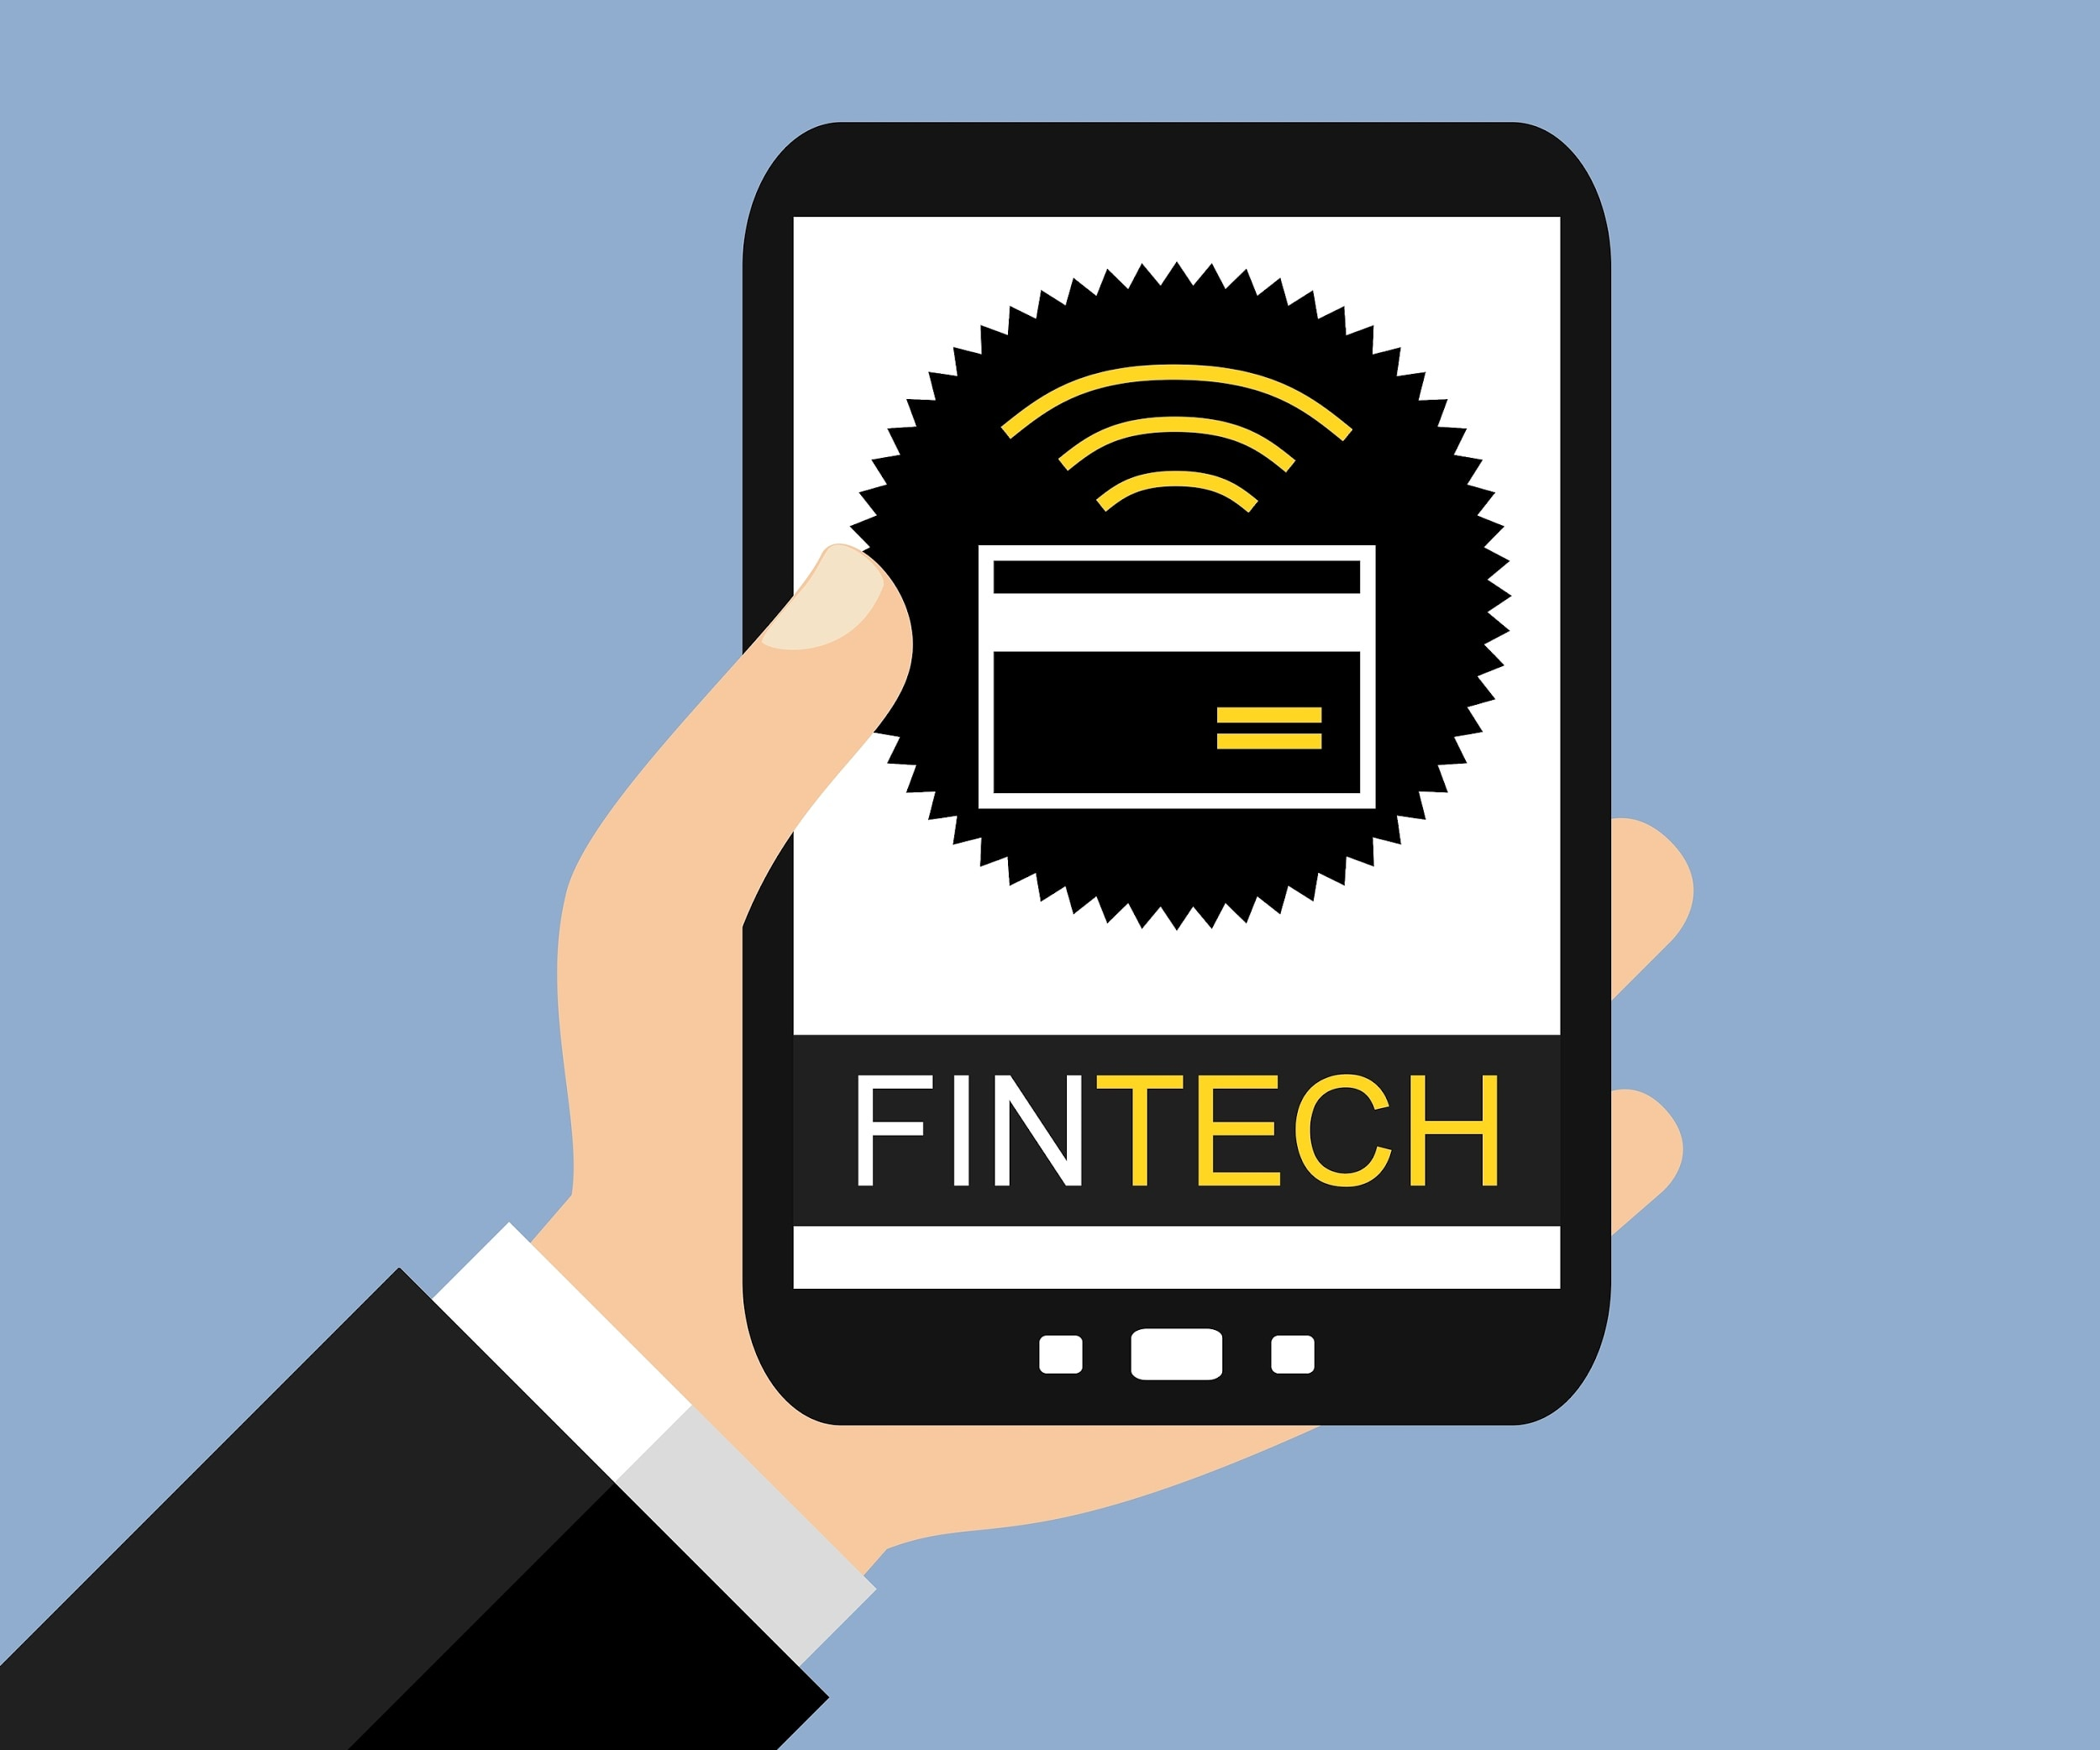 fintech resource